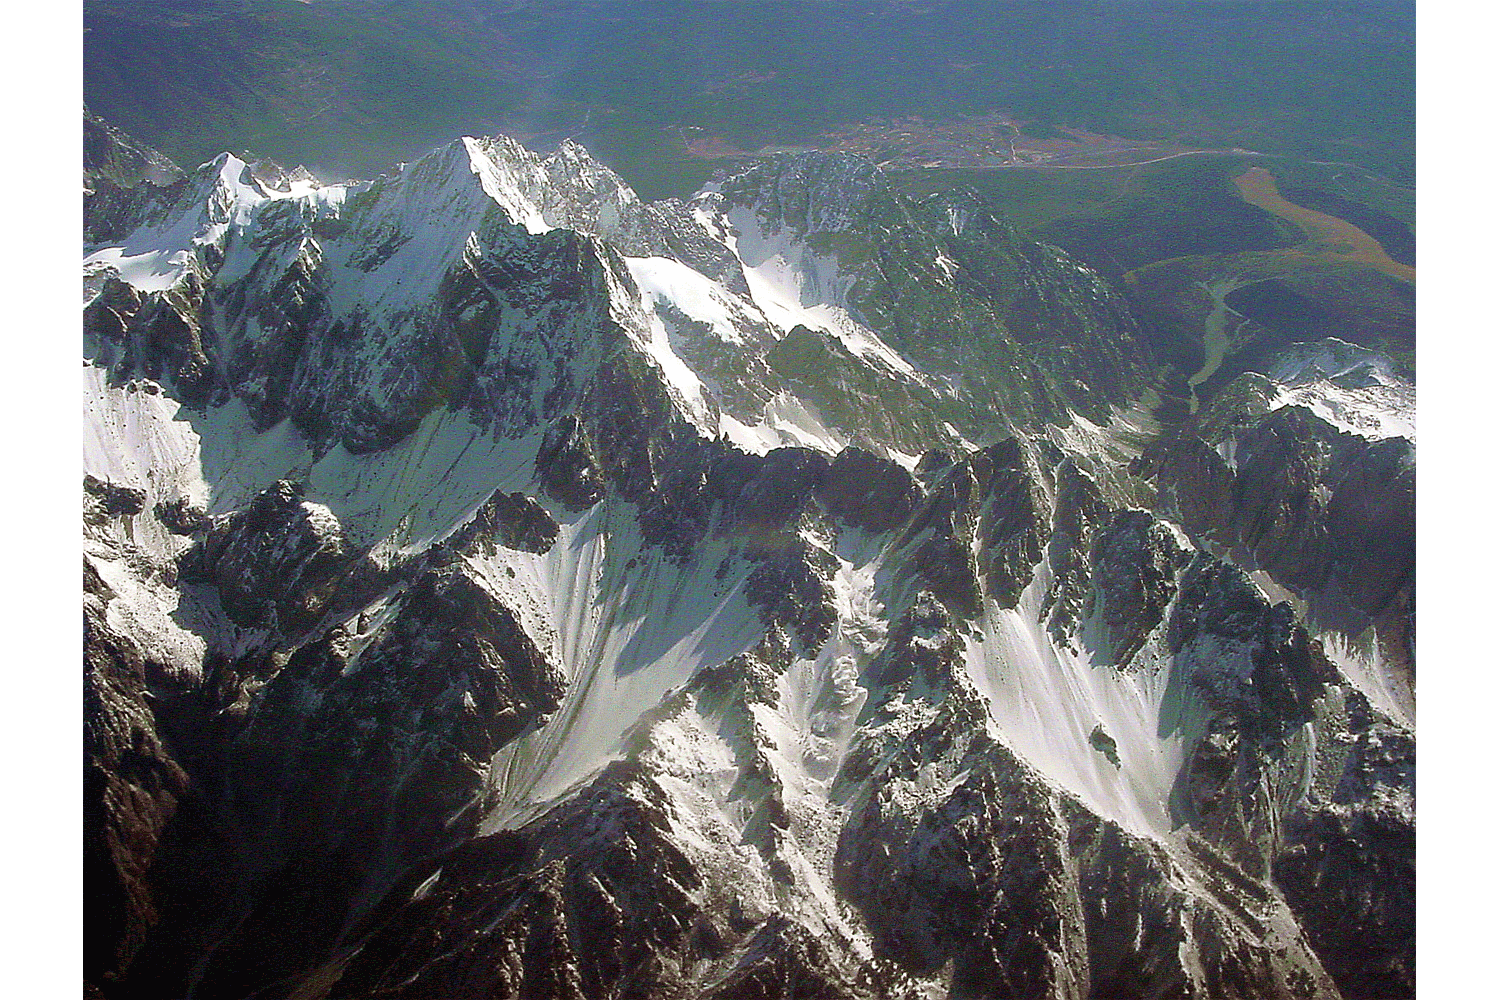 Retreating glaciers on Jade Dragon Snow Mountain in Yunnan province, on the eastern edge of the Tibetan plateau. Photo by Yang Yong.